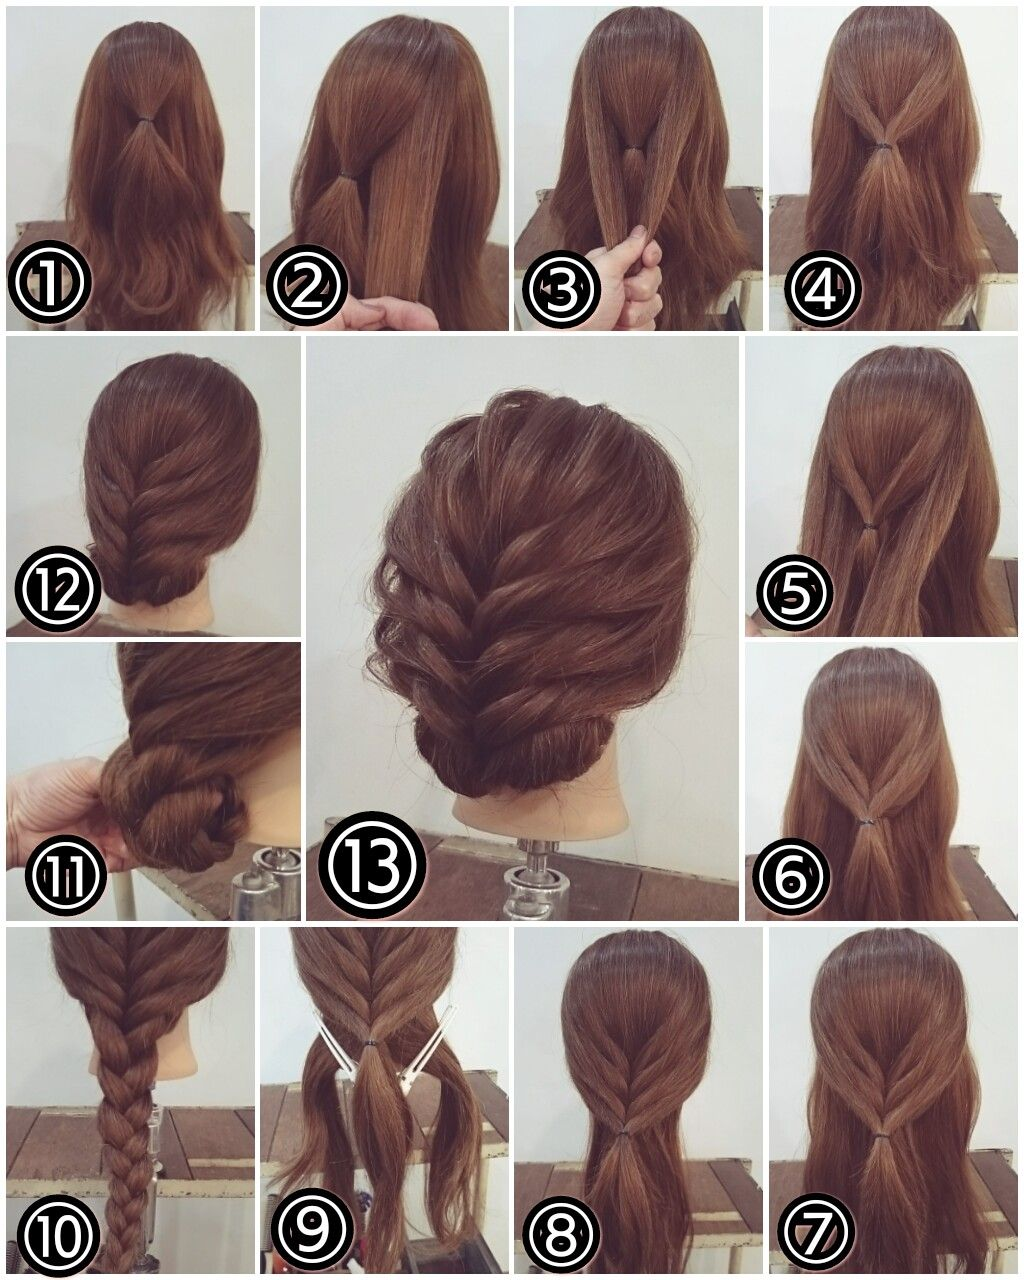 Pin by lucy key on hair pinterest updo hair style and makeup